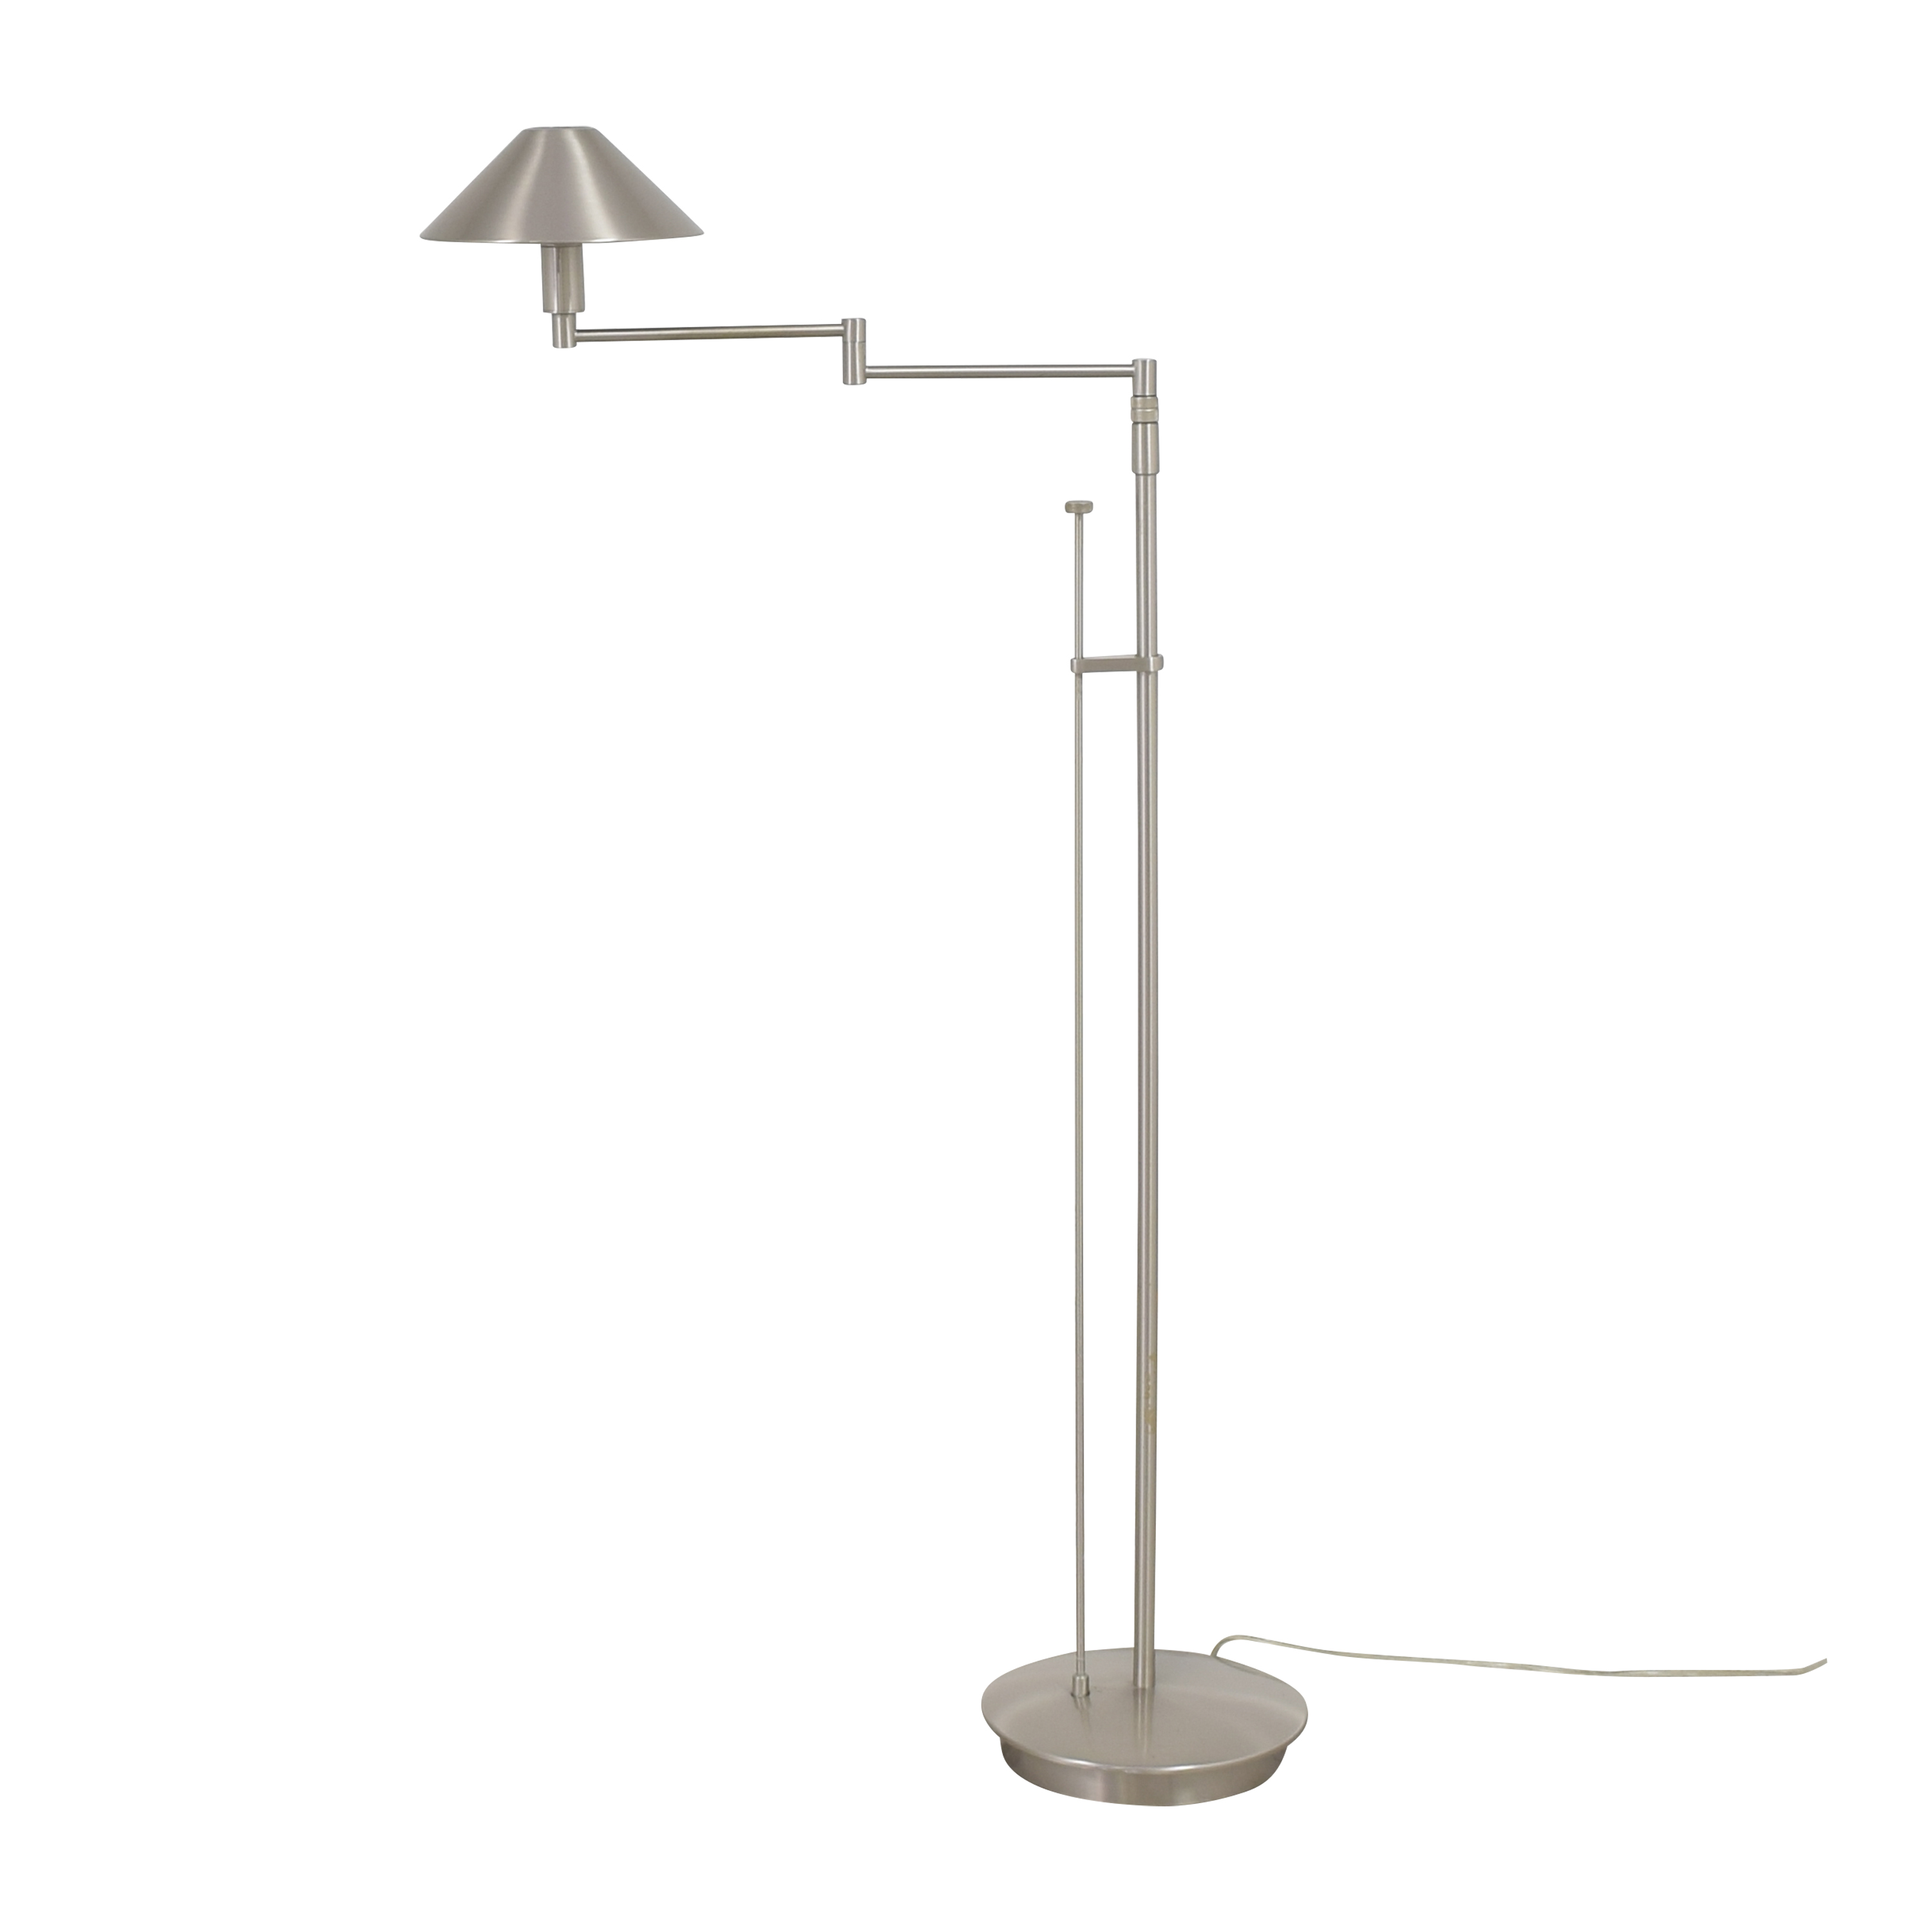 buy Holtkotter Swing Arm Floor Lamp Holtkotter Decor